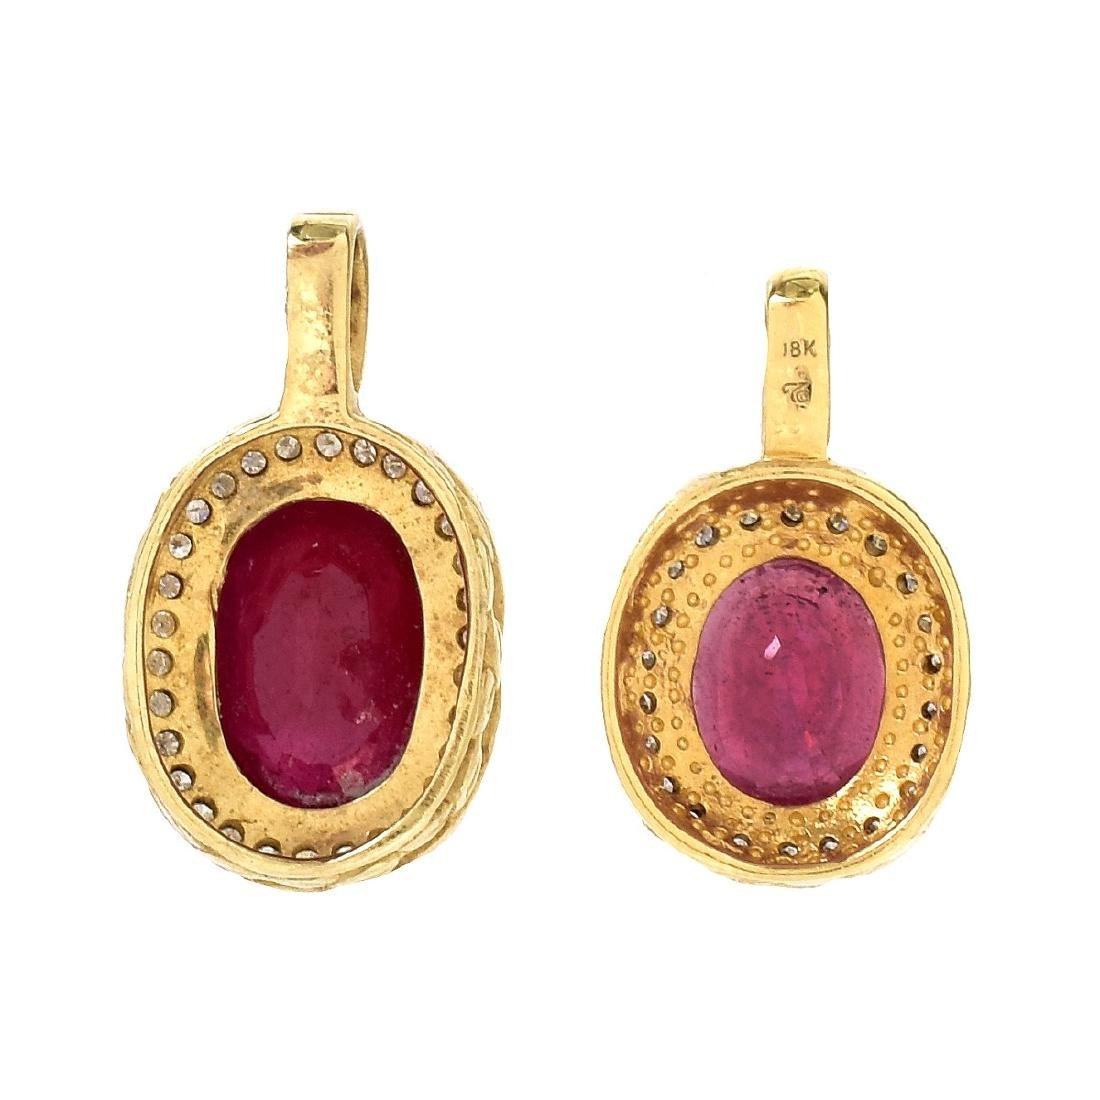 Two Gemstone and Gold Pendants - 3